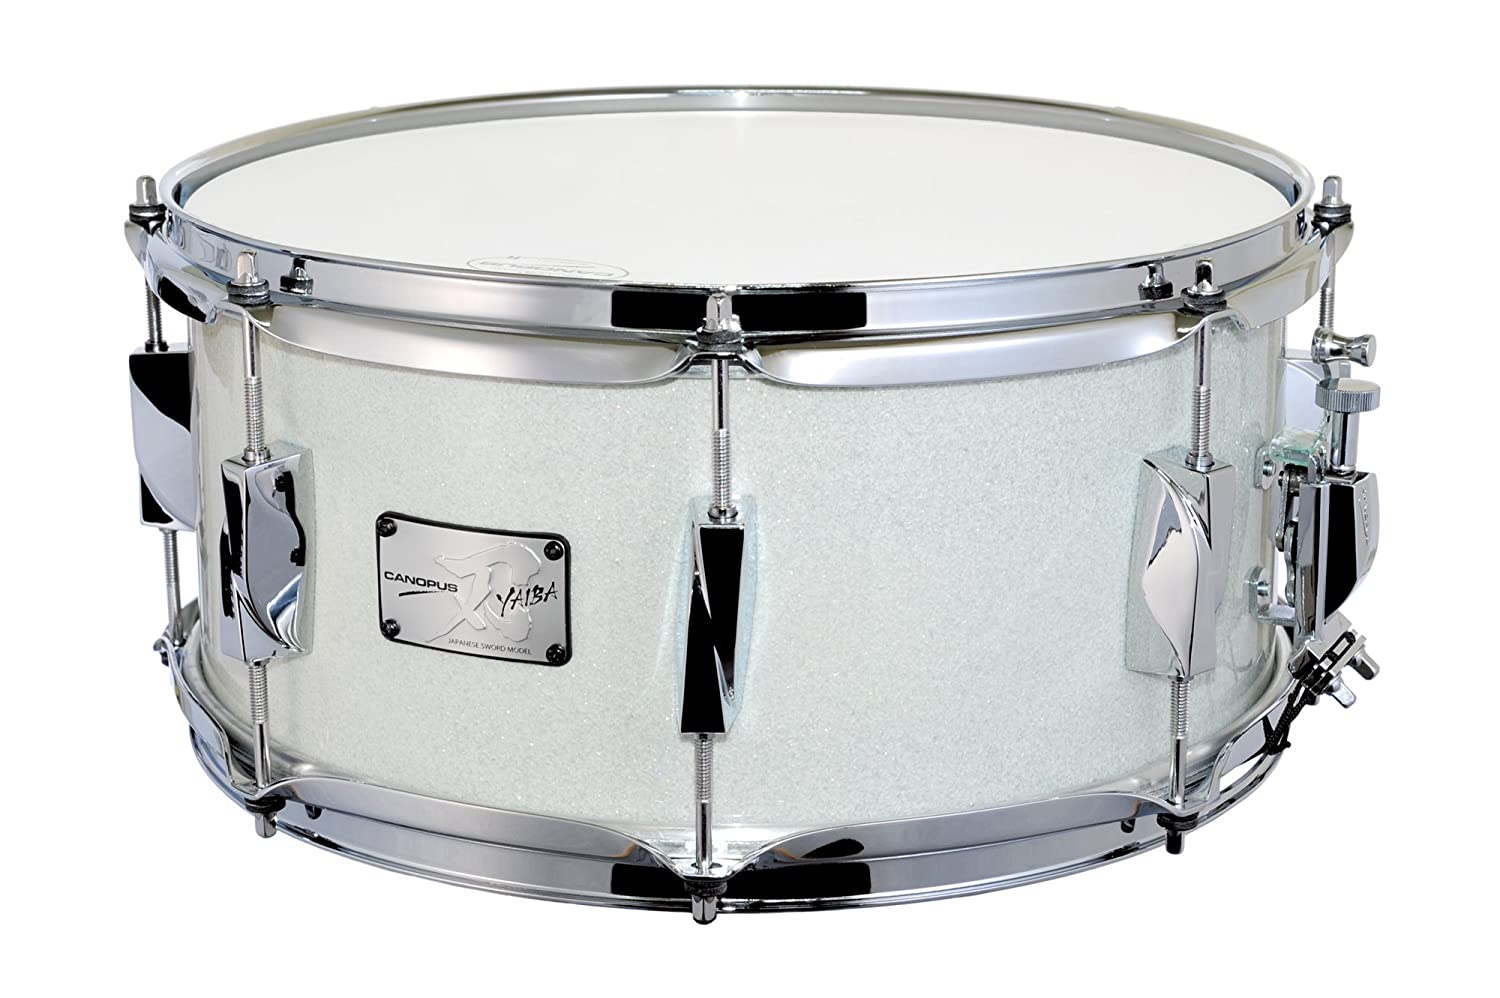 CANOPUS カノウプス スネアドラム 刃(YAIBA) Birch 6.5x14 Snare Drum Ice White Sparkle LQ   B015RNG2DS